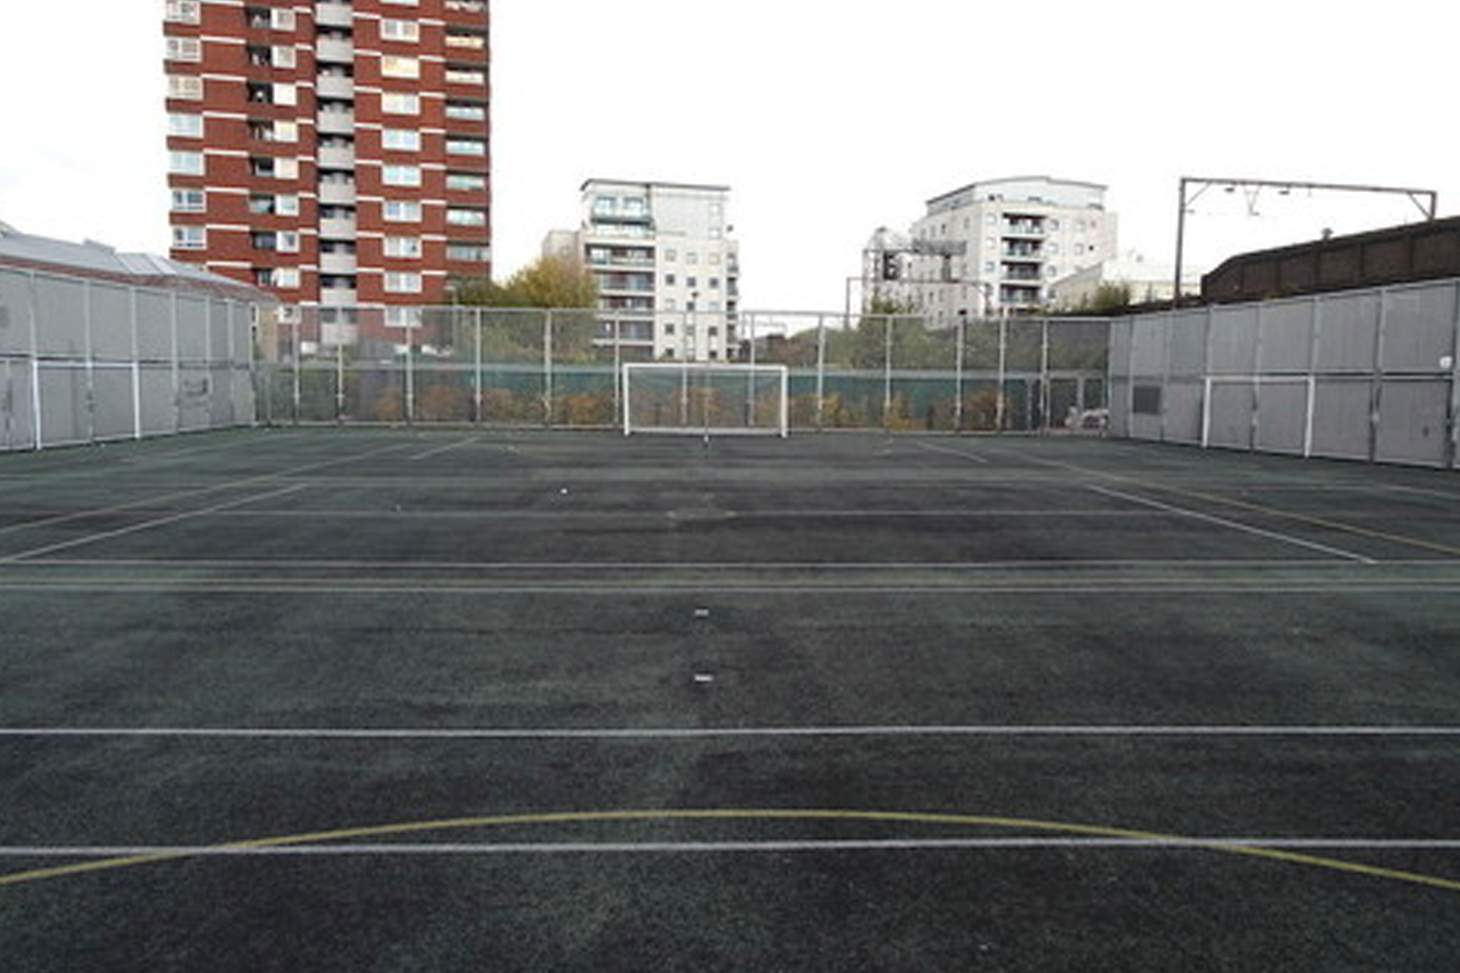 Bishop Challoner Catholic Federation of Schools 5 a side | Concrete football pitch